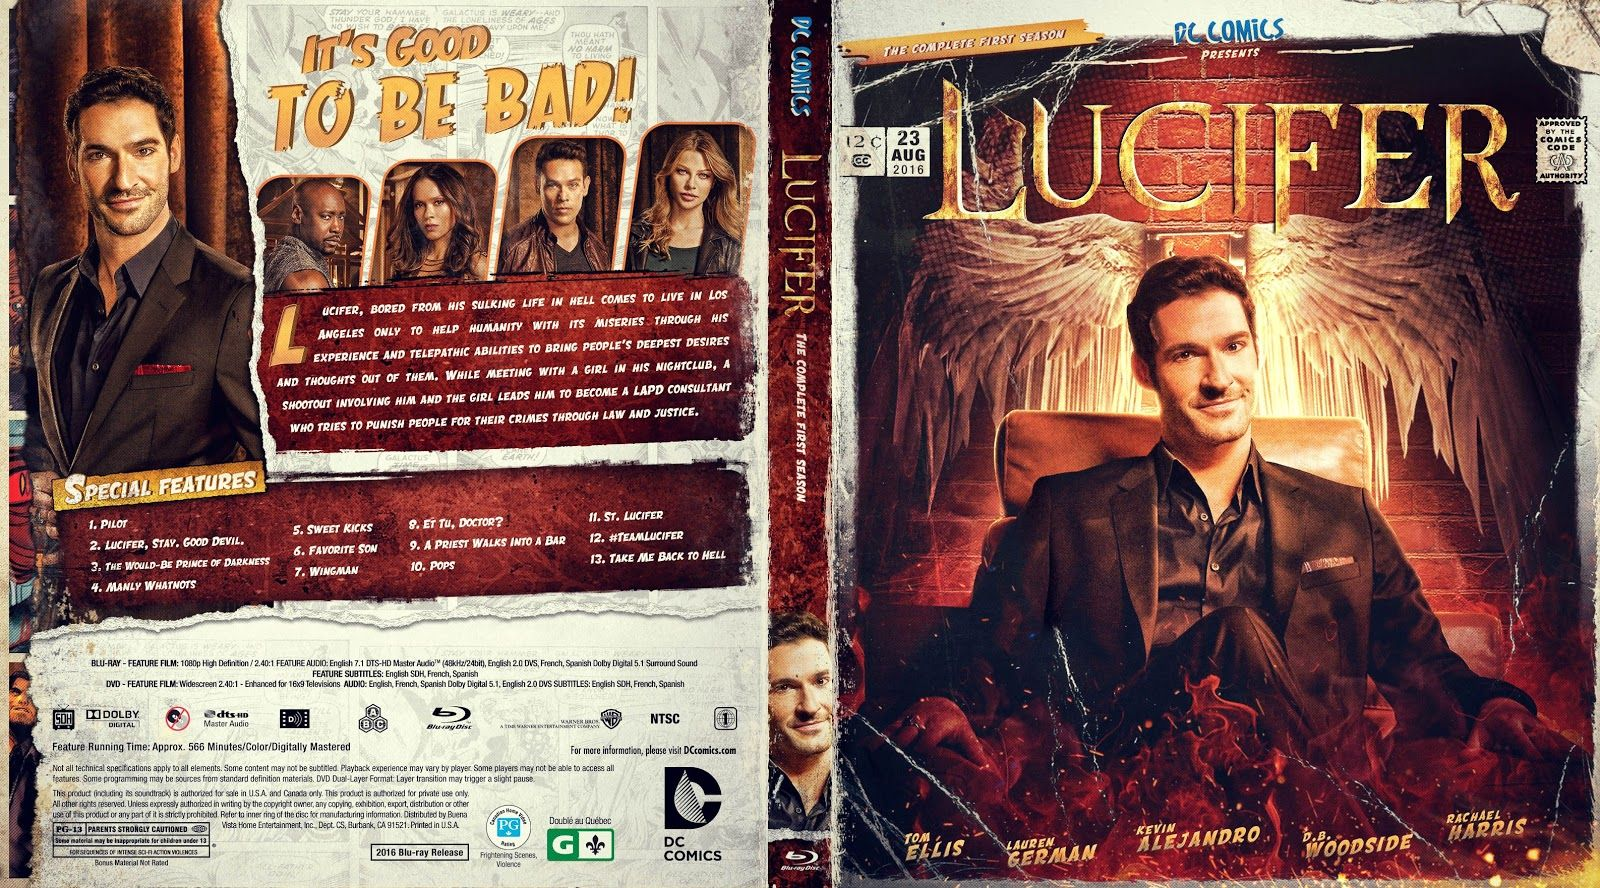 Lucifer Season 1 Bluray Cover With Images Lucifer